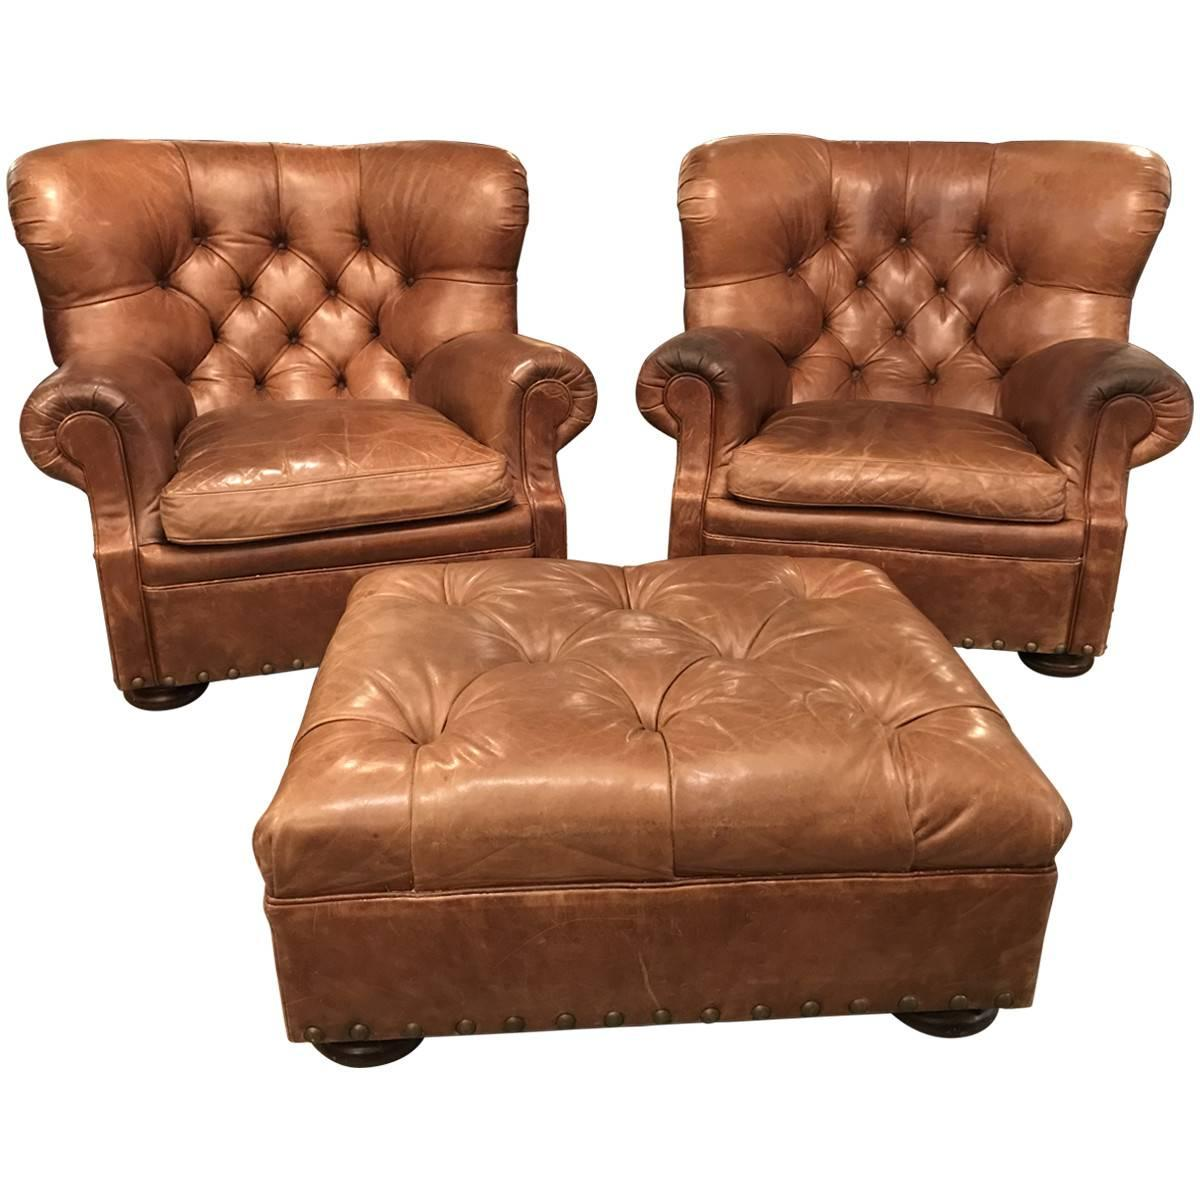 Leather Chair And Ottoman Ralph Lauren Home Pair Of Leather Writer S Chairs And Ottoman